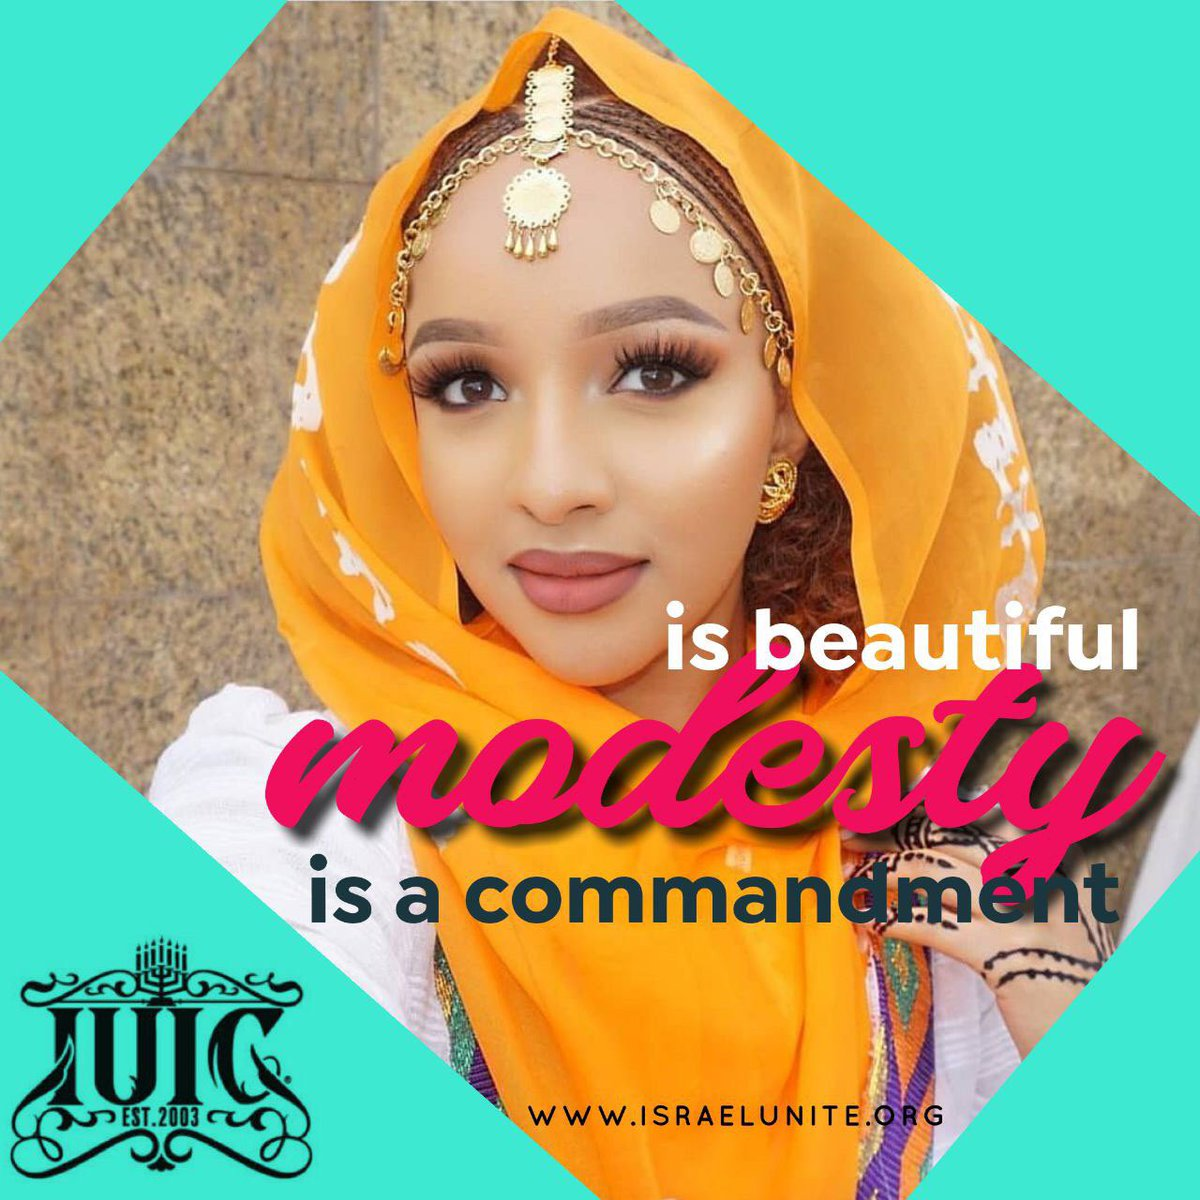 Let your modesty shine!!!   1 Timothy 2:9 [9]In like manner also, that women adorn themselves in modest apparel, with shamefacedness and sobriety; not with broided hair, or gold, or pearls, or costly array;  #Beautiful #Modesty #ModestApparel #Shamefaced #KeeptheCommandmentspic.twitter.com/VjGRMHwbb6